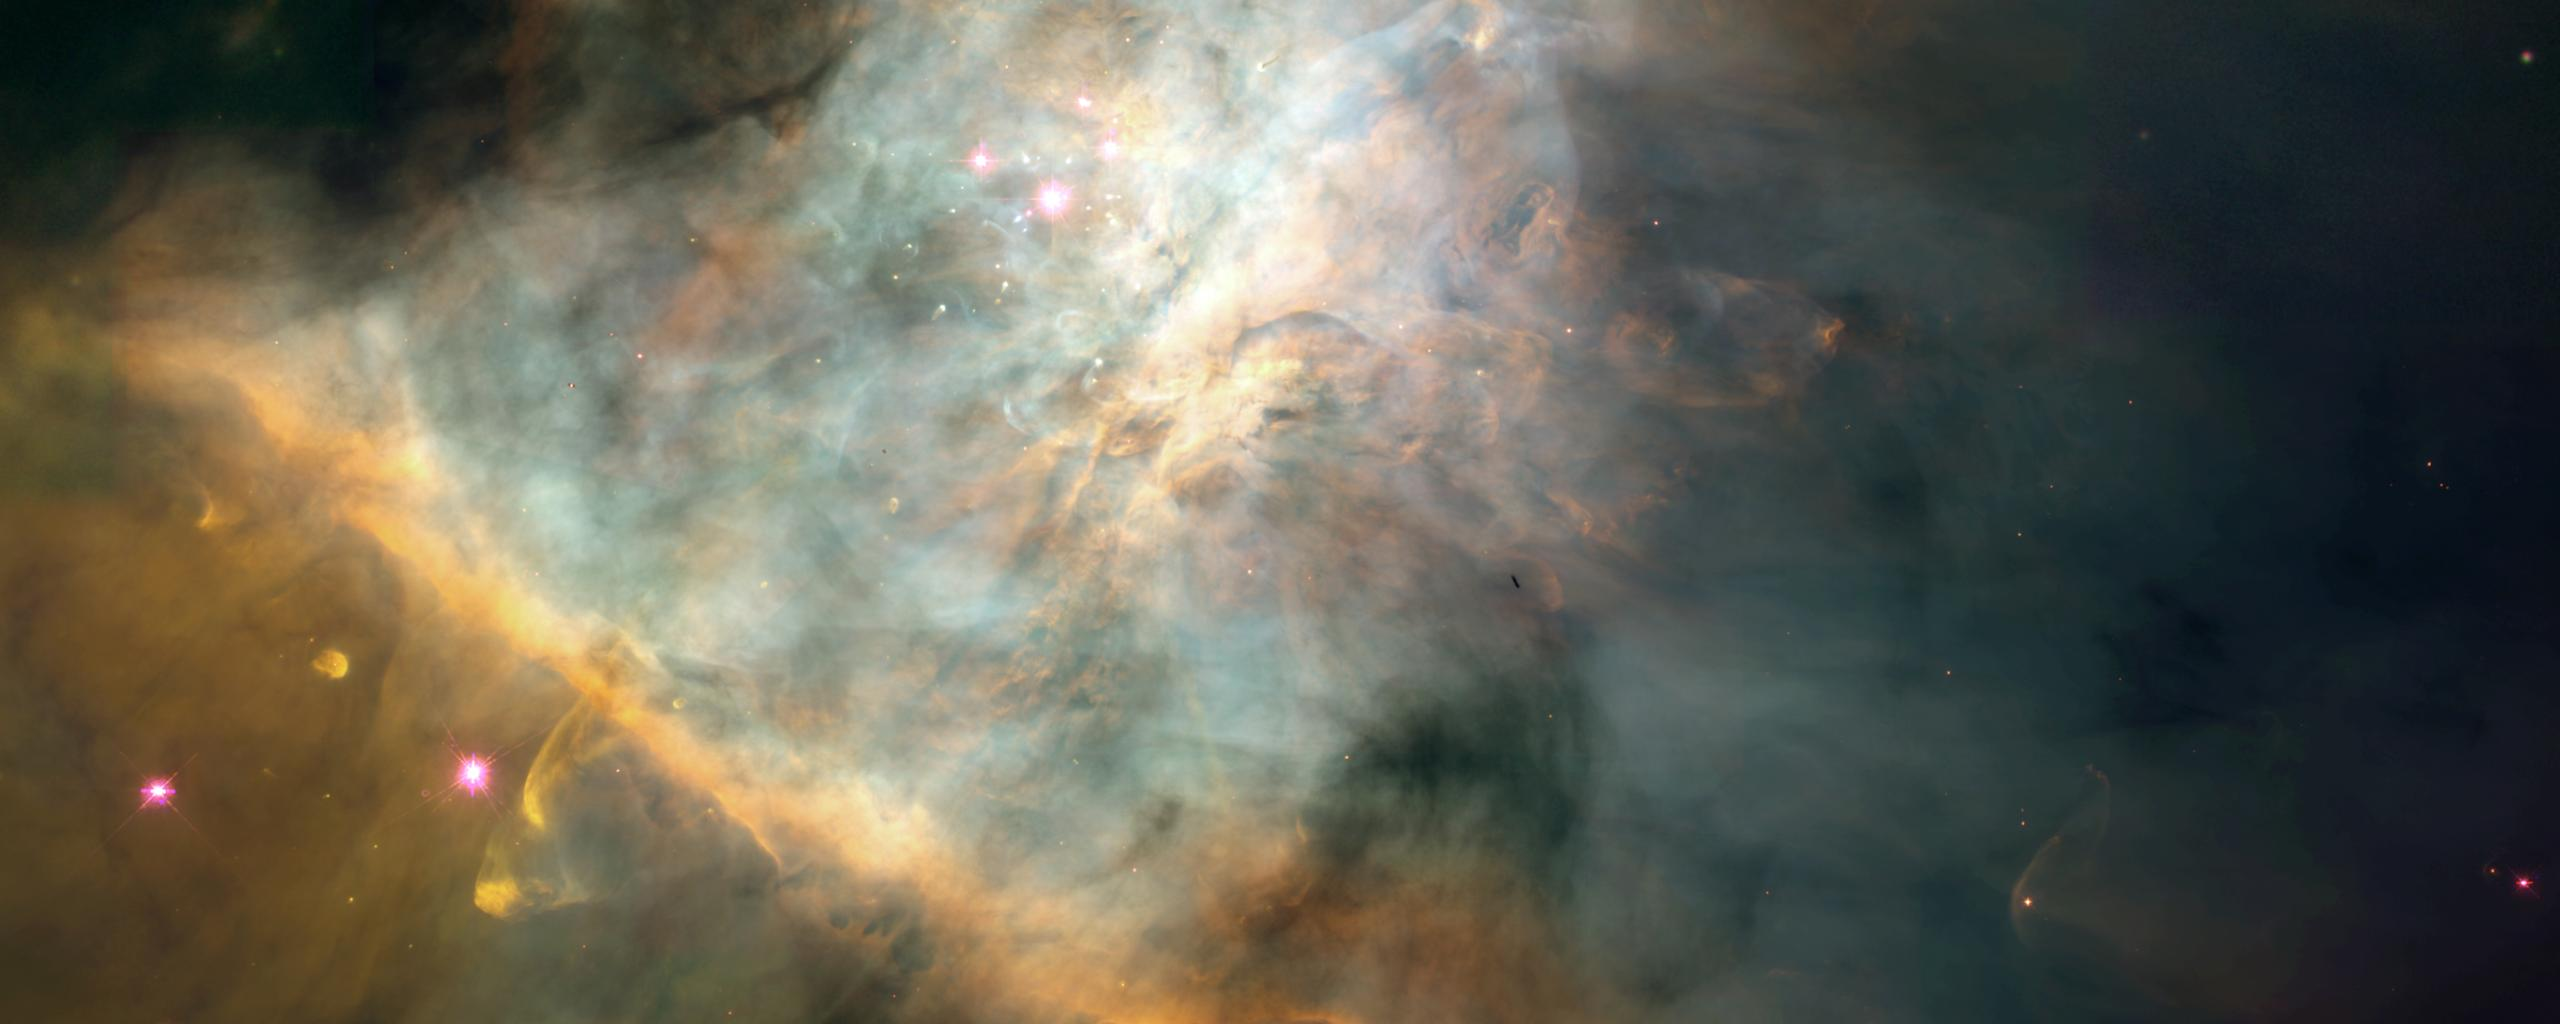 Hubble image of Orion Nebula